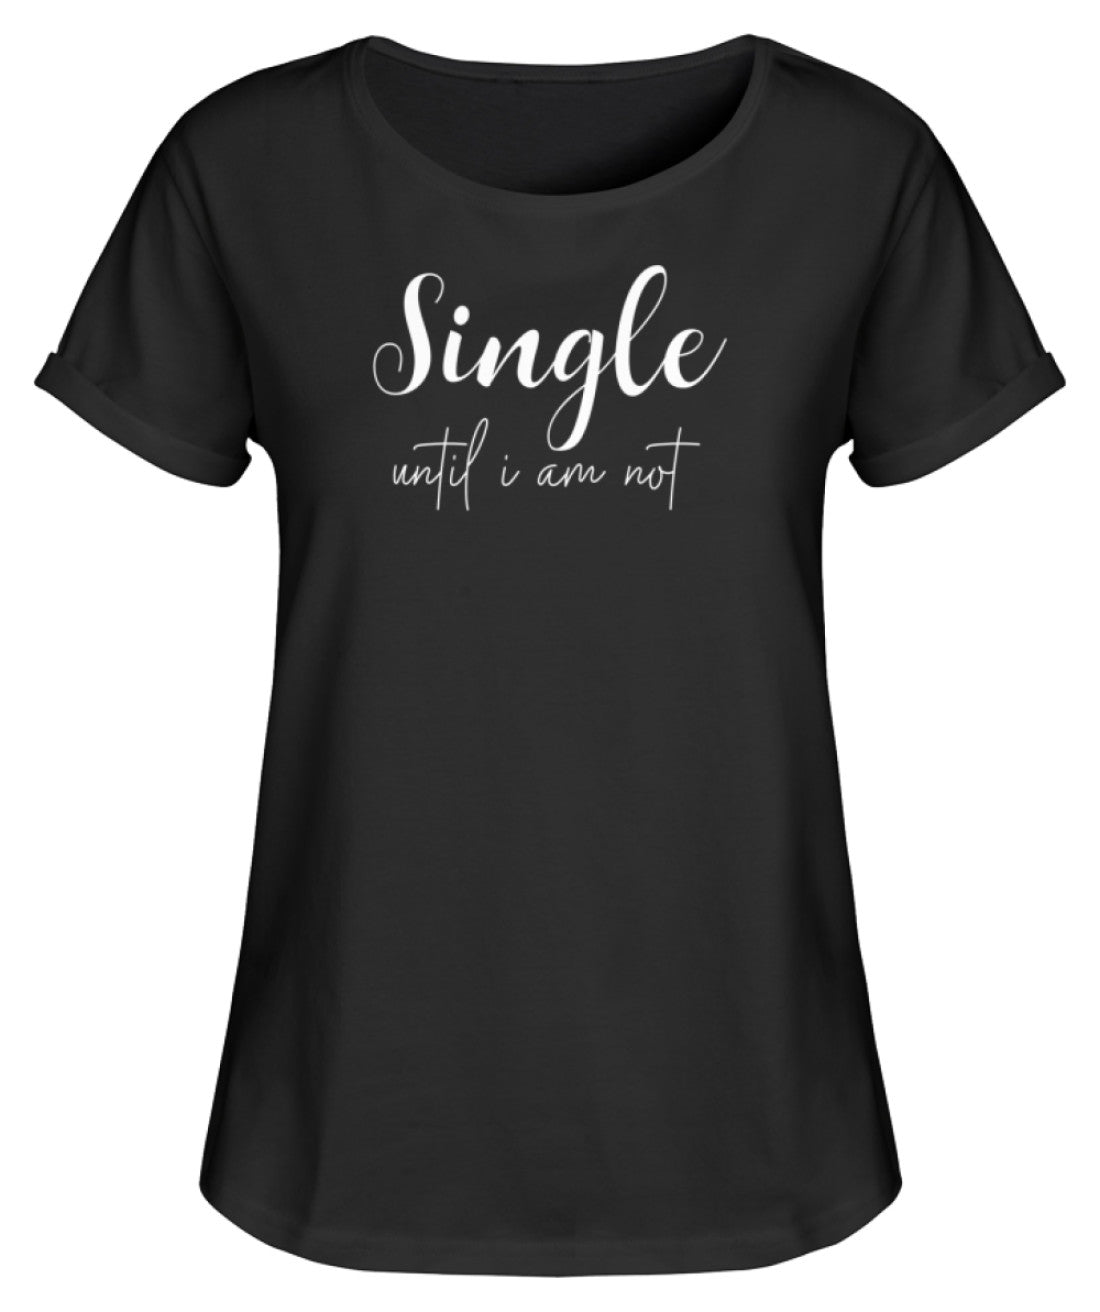 PM FASHION WOMEN® Single until i am not  - Damen RollUp Shirt - PM FASHION®